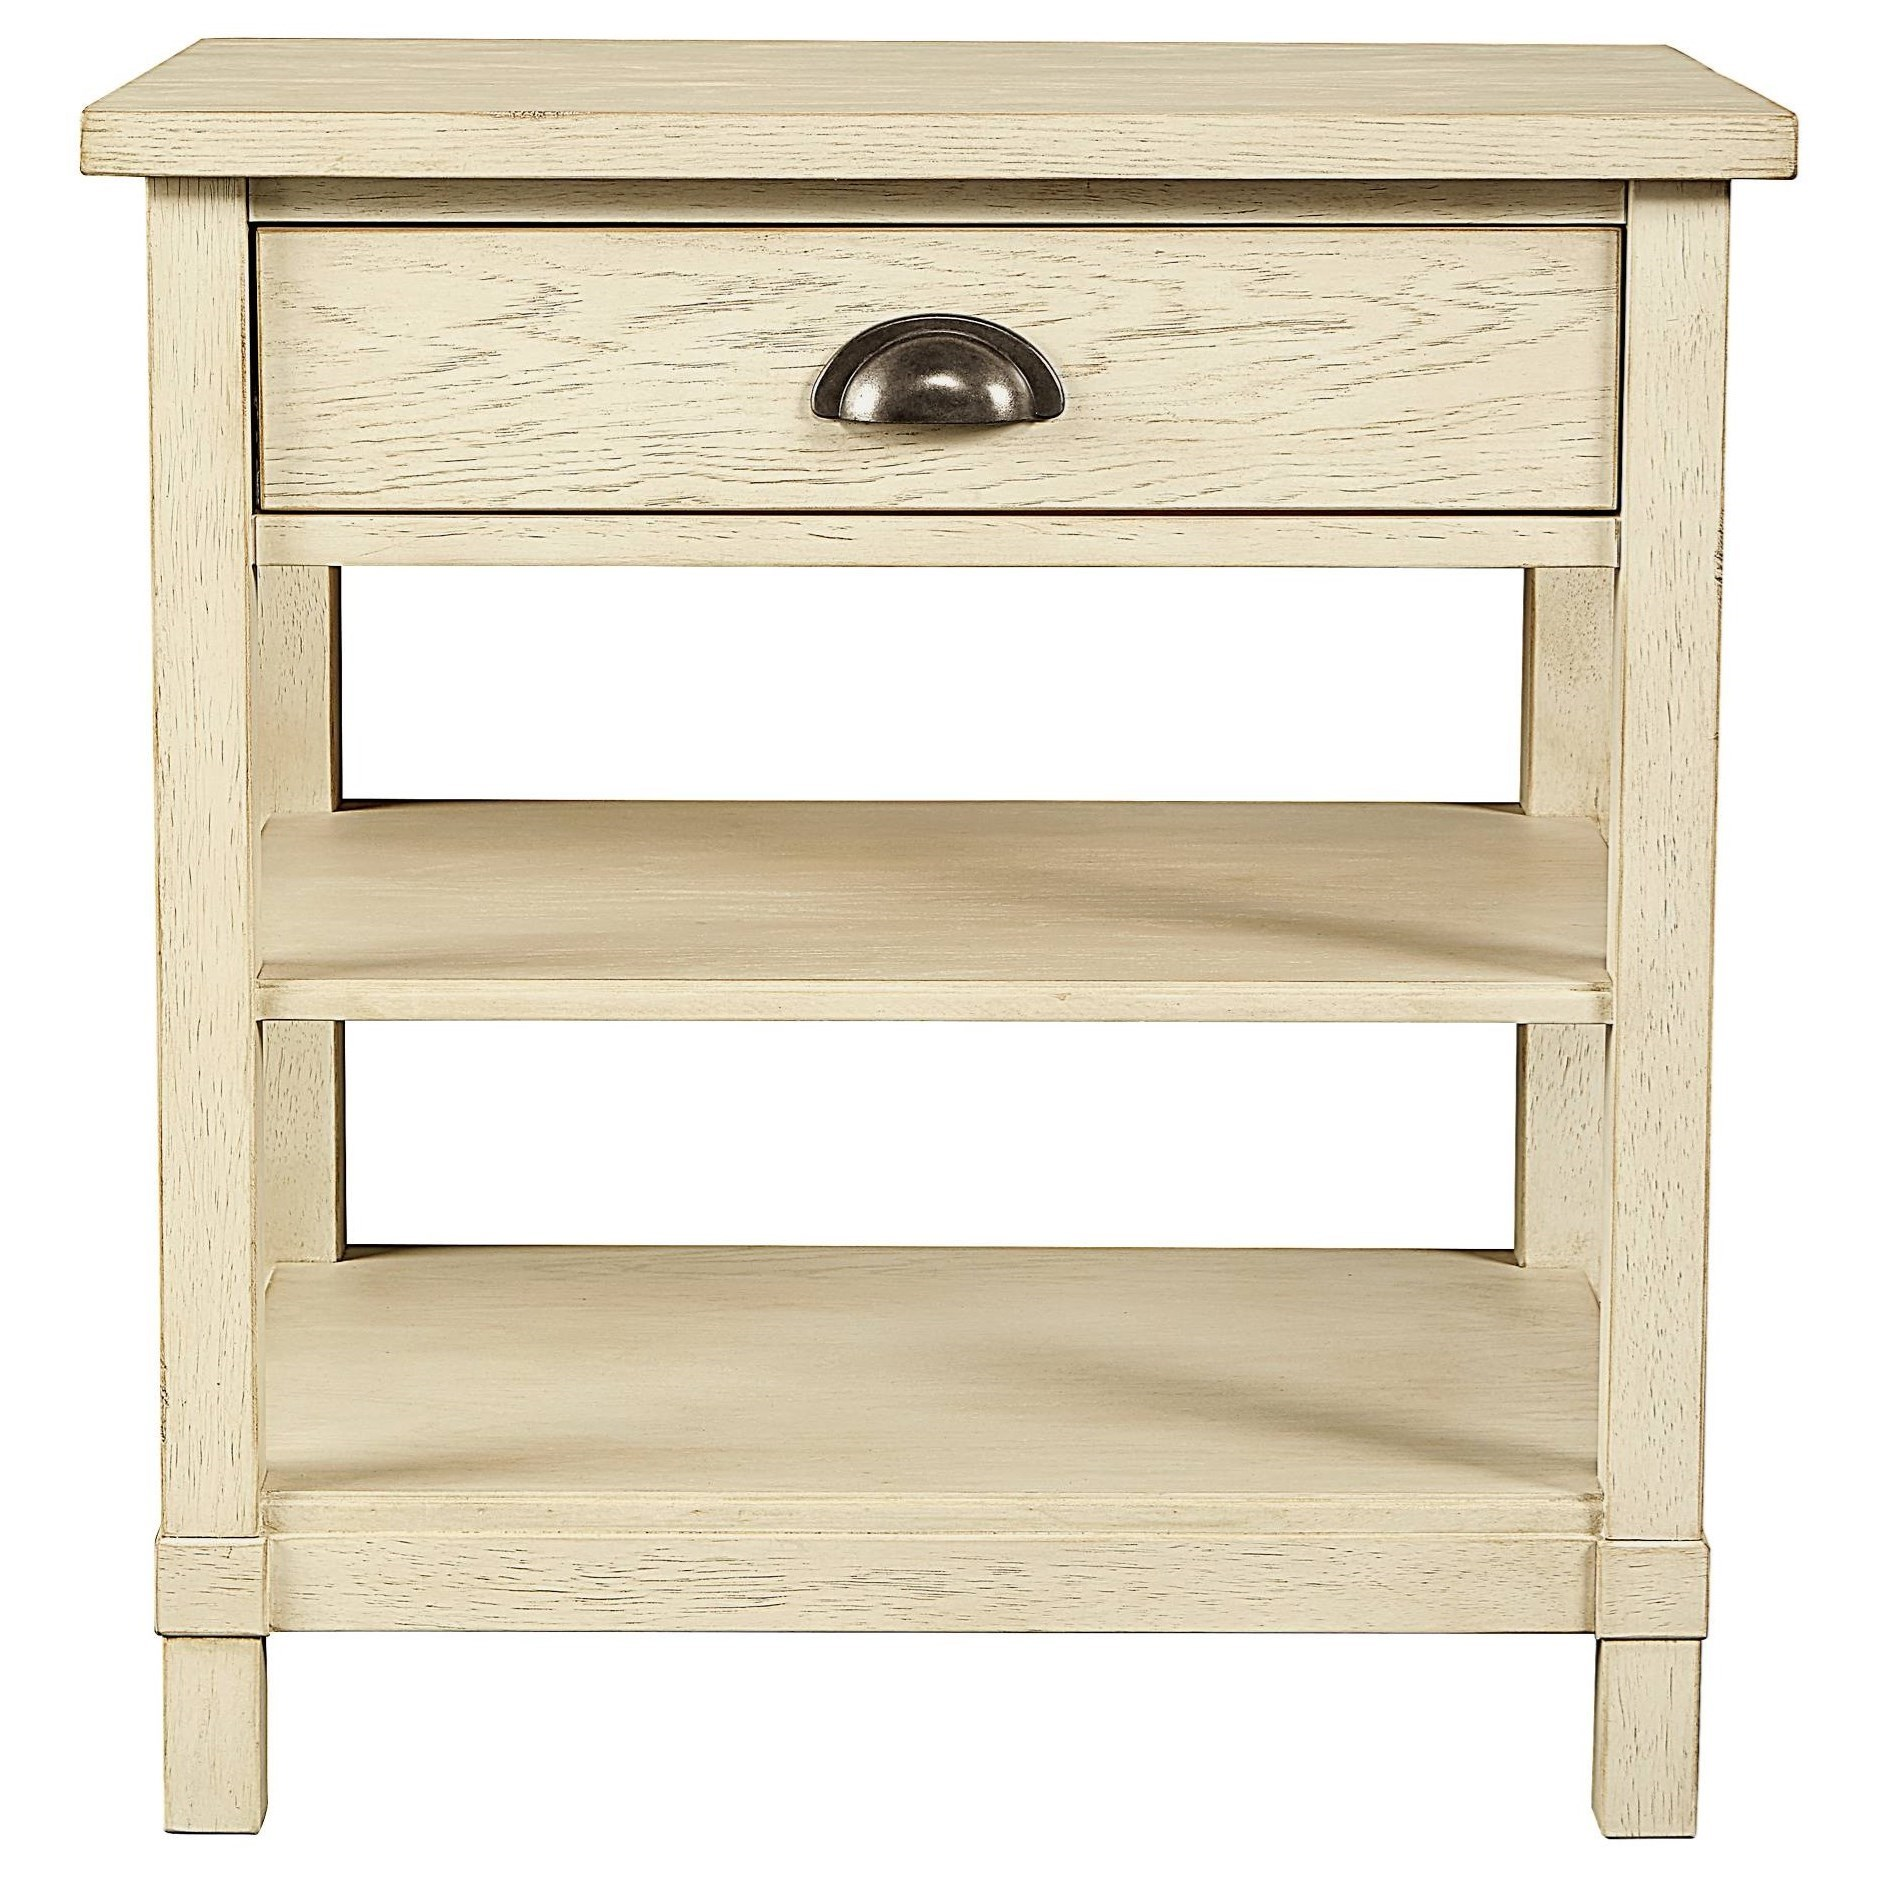 Stone & Leigh Furniture Driftwood Park Bedside Table - Item Number: 536-23-80